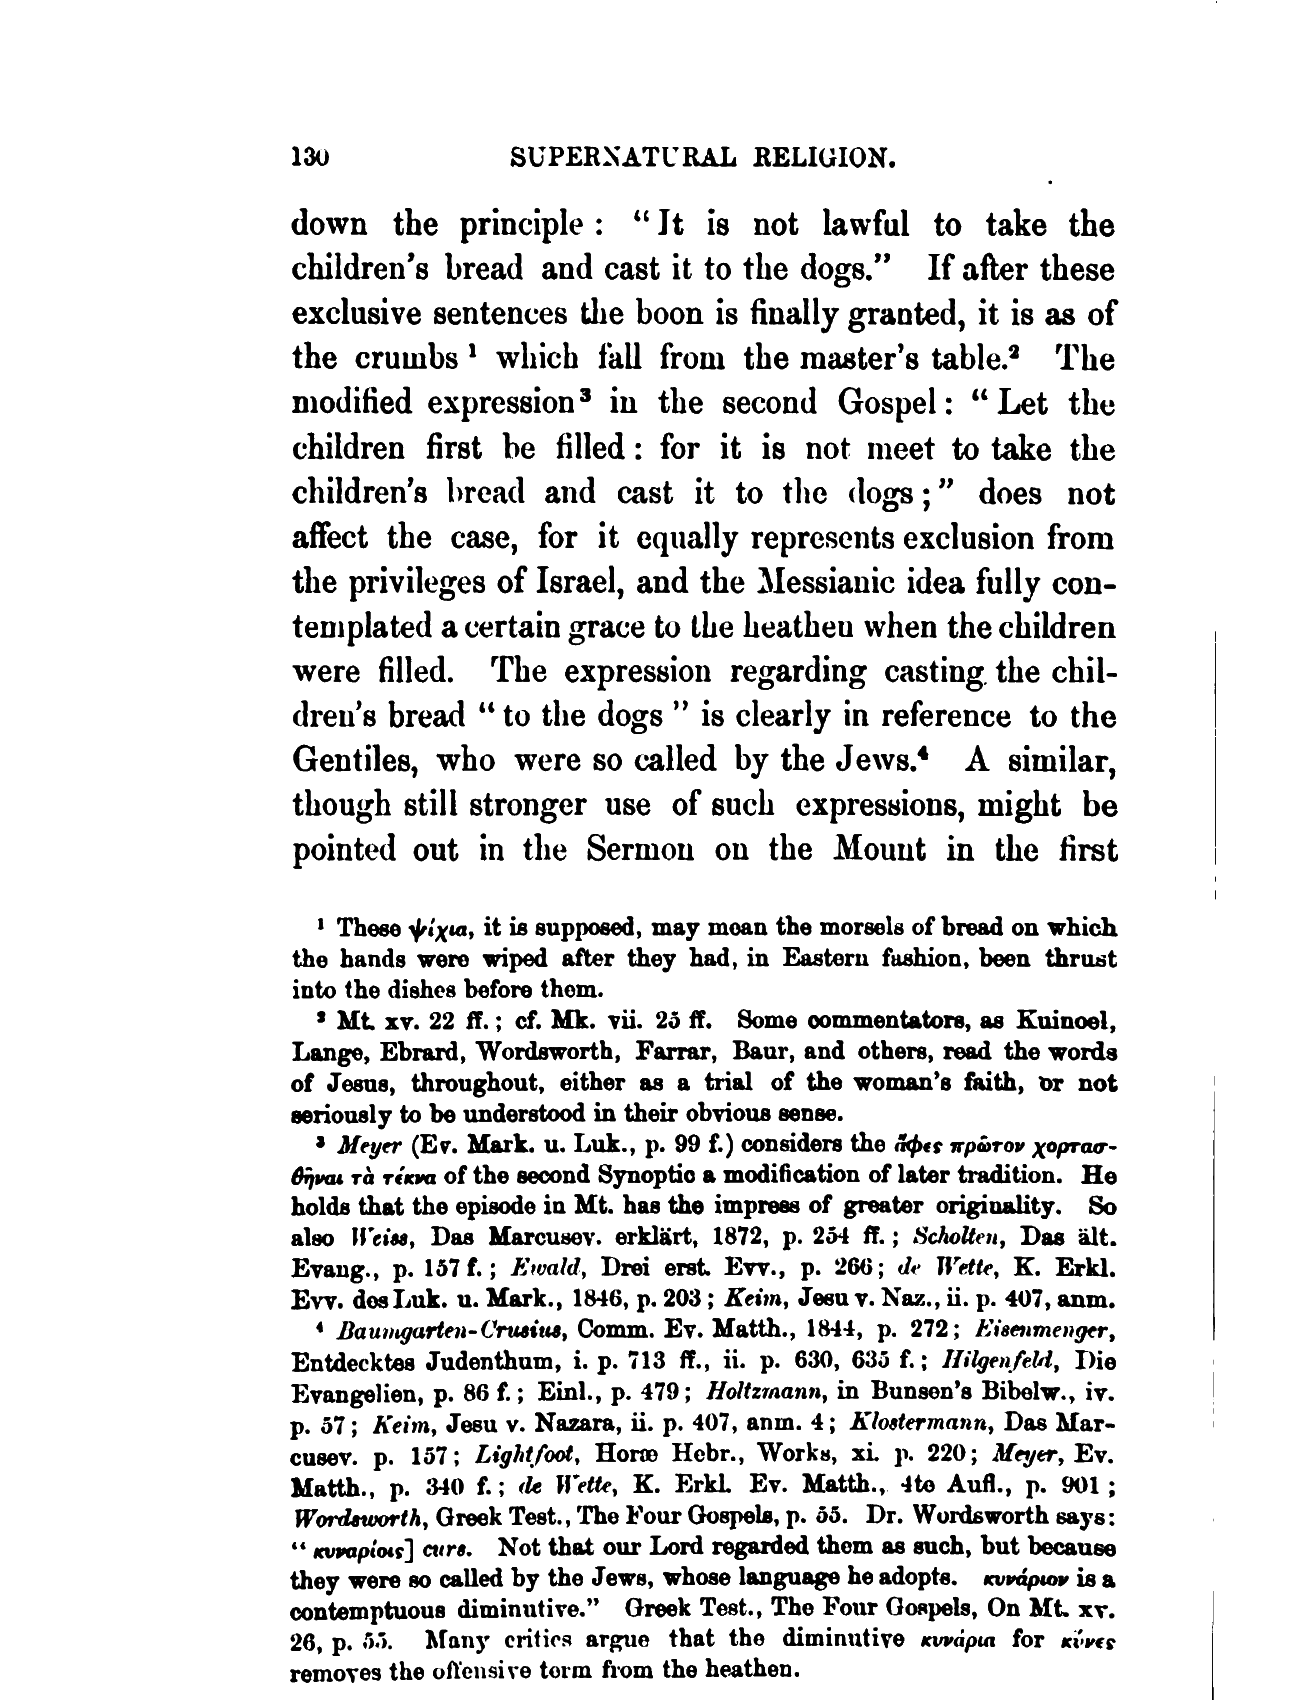 '[130]' from the web at 'http://www.gutenberg.org/files/37233/37233-h/pgimages/130.png'